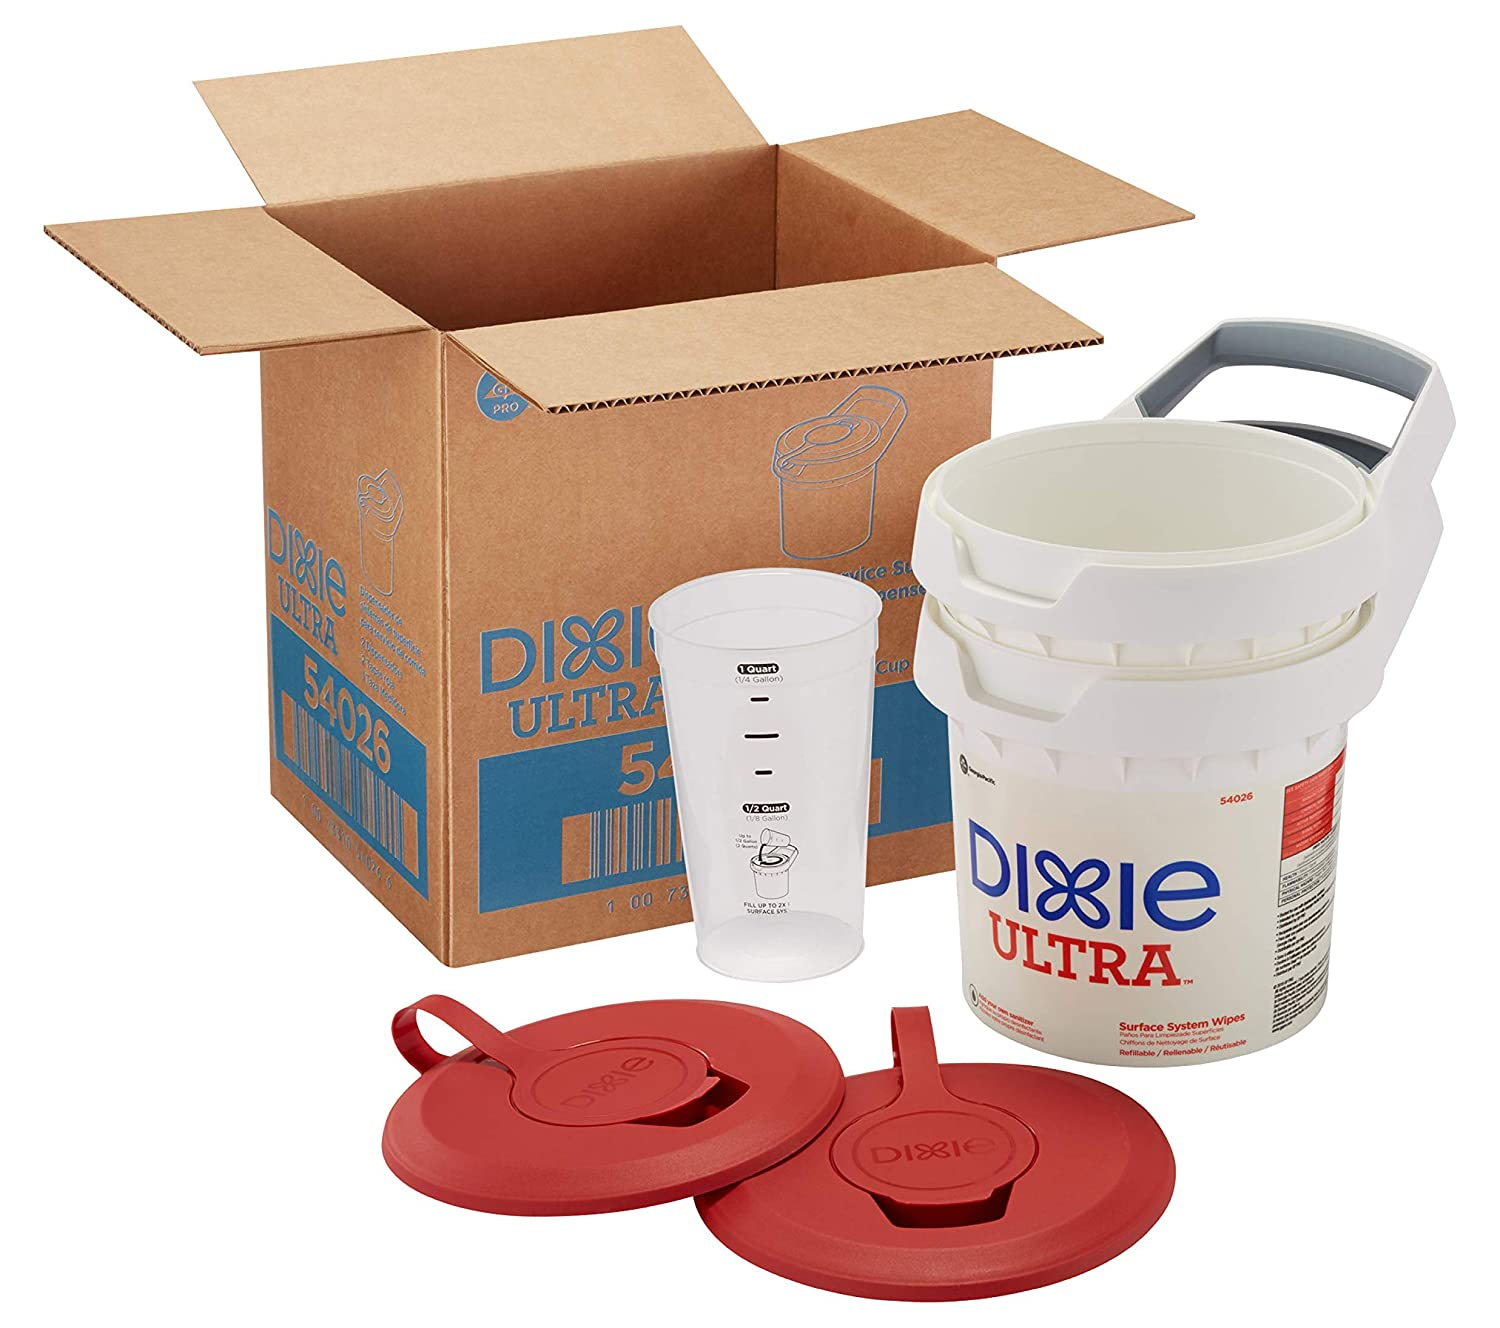 Dixie Ultra Surface System Wiper Bucket for Food Service, 54026, 2 Buckets With Lids Per Case